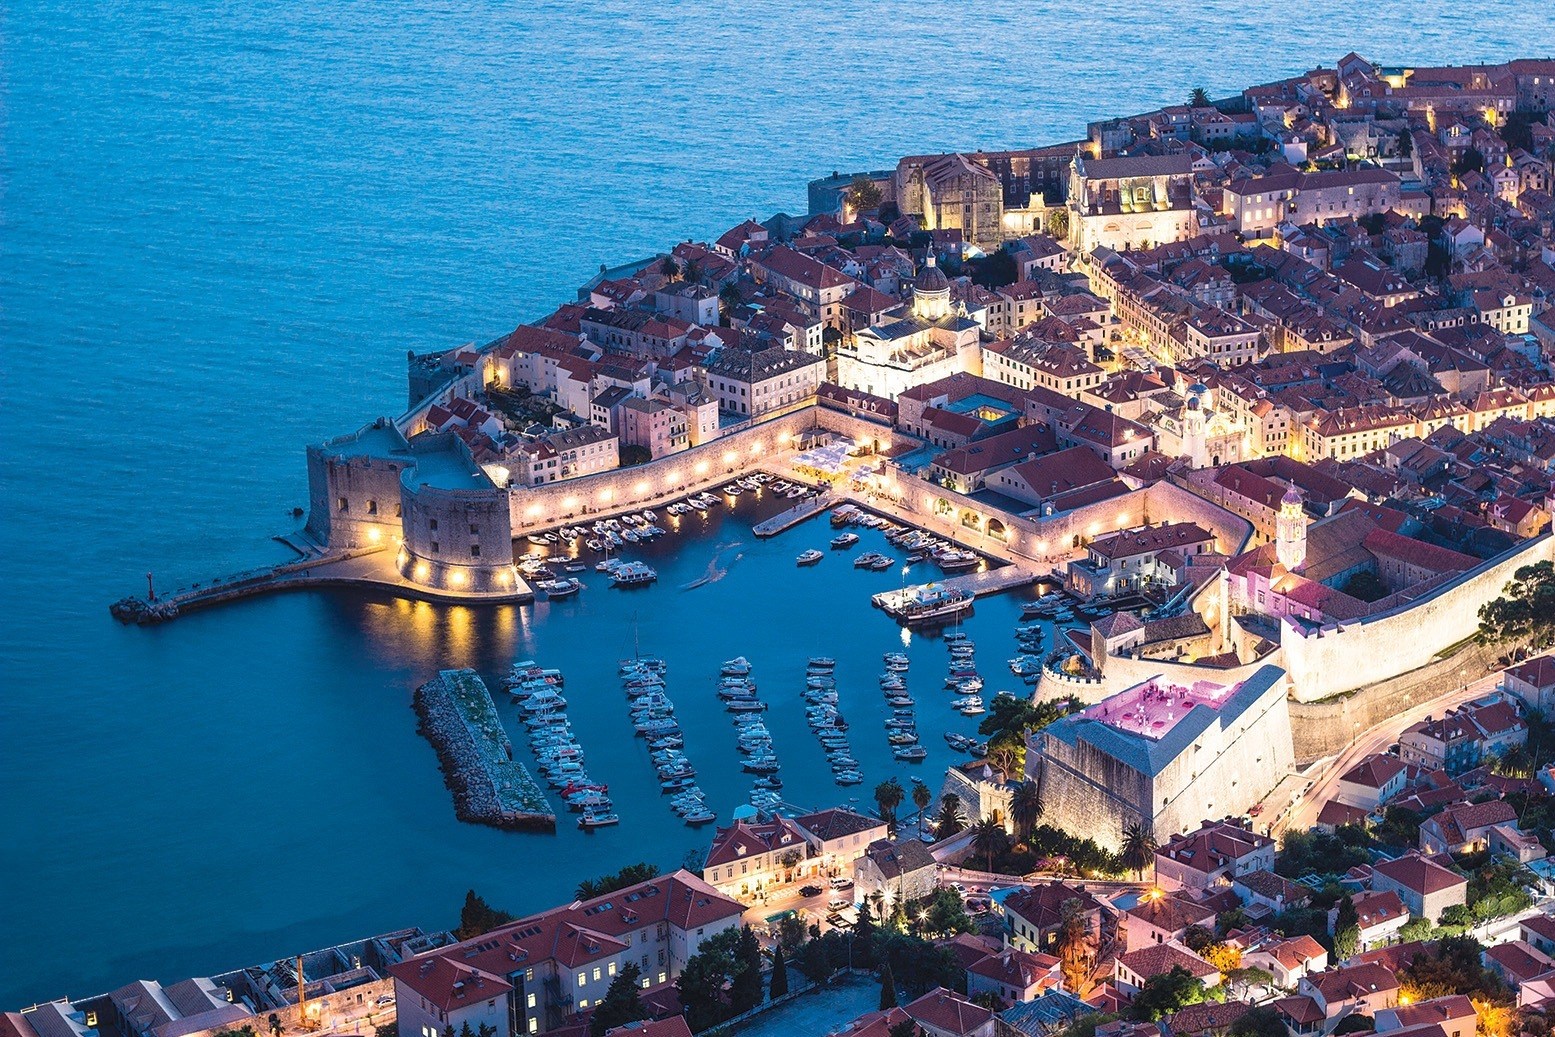 Time-Lapse Captures The Spirit Of Dubrovnik